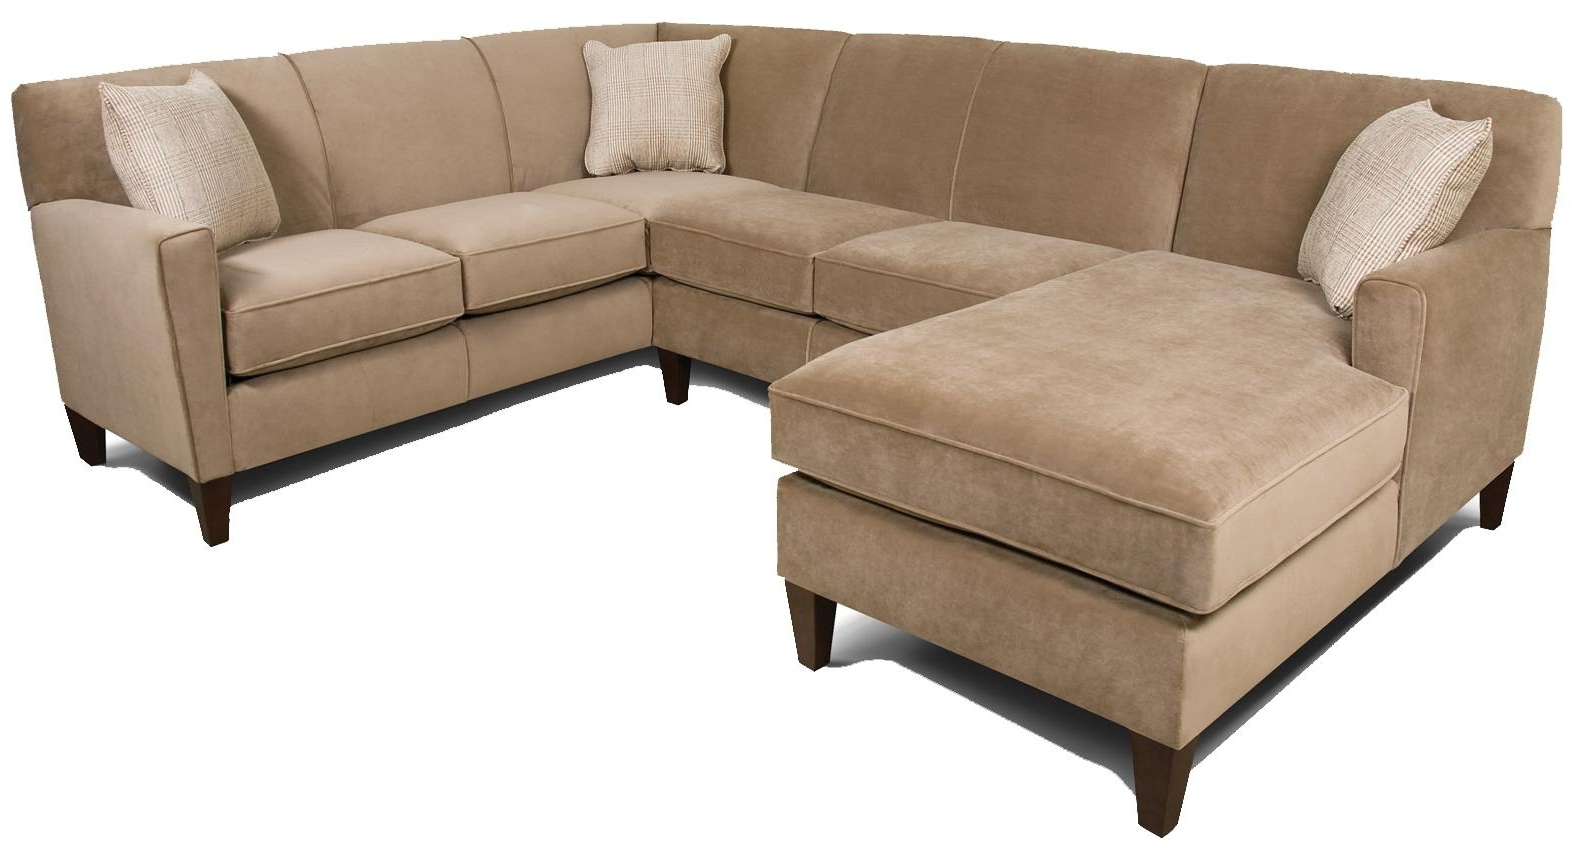 England Collegedale Contemporary 3 Piece Sectional Sofa With Laf Regarding Latest Green Bay Wi Sectional Sofas (Gallery 14 of 20)